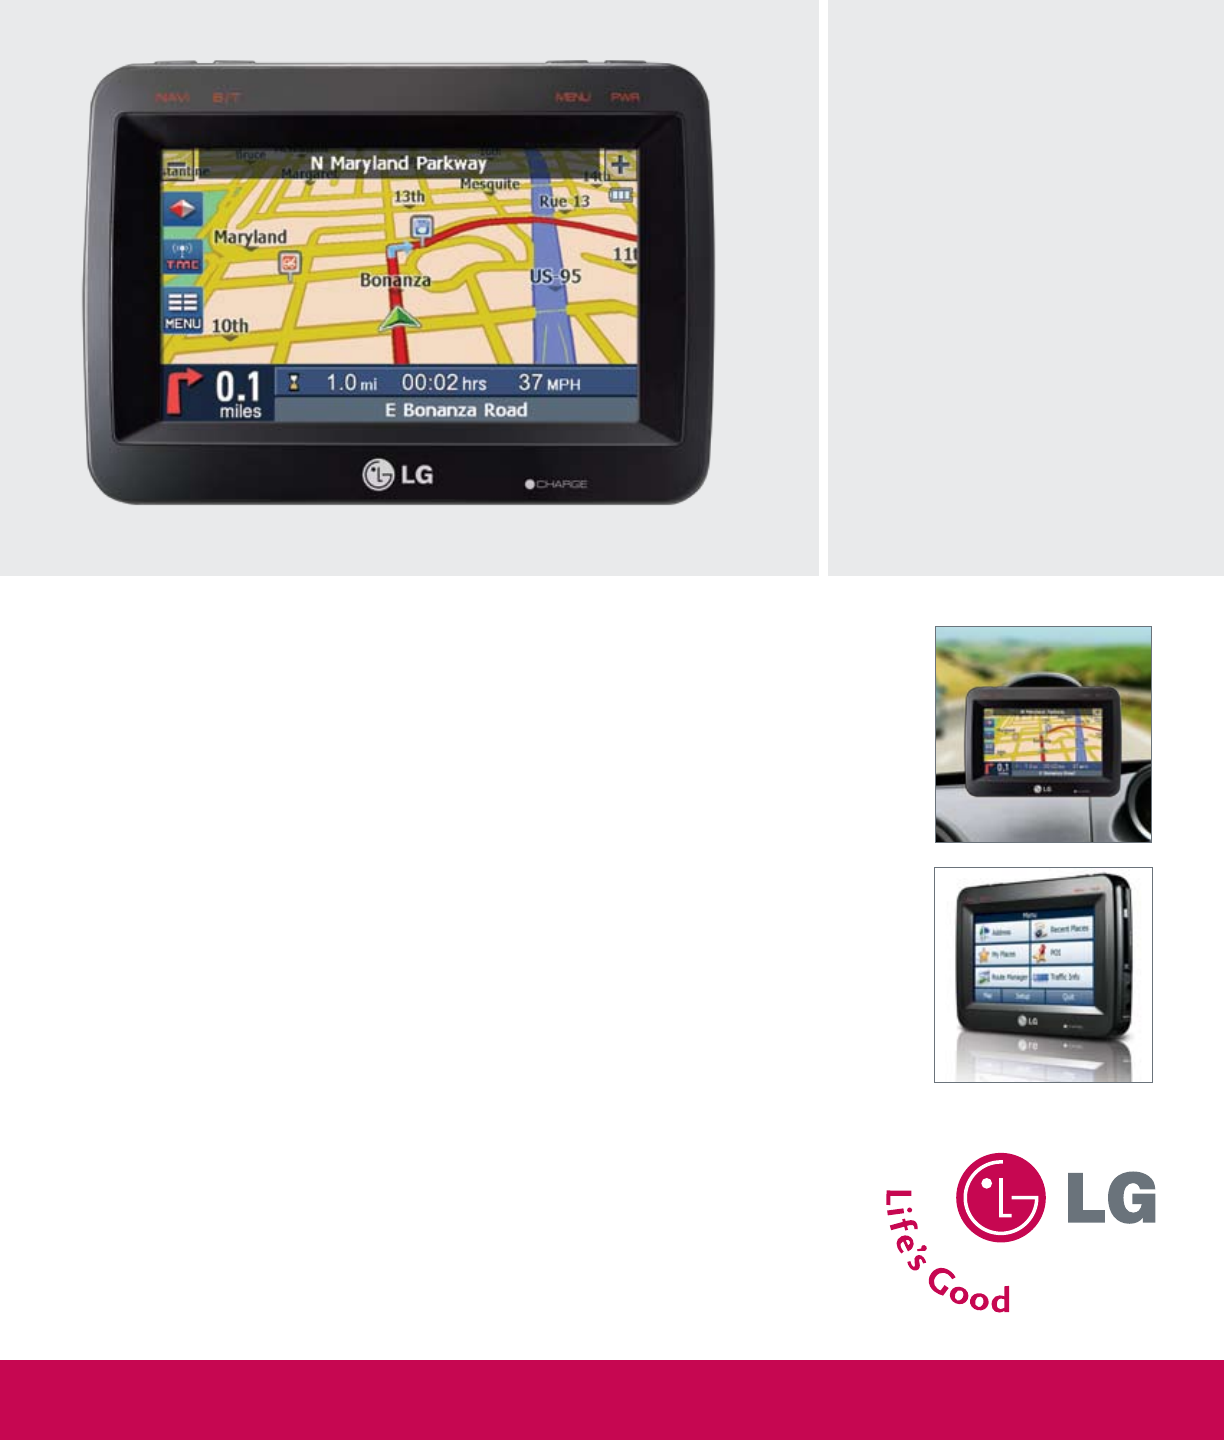 lg electronics gps receiver ln790 user guide manualsonline com rh auto manualsonline com LG User Manual Guide LG Owner's Manual